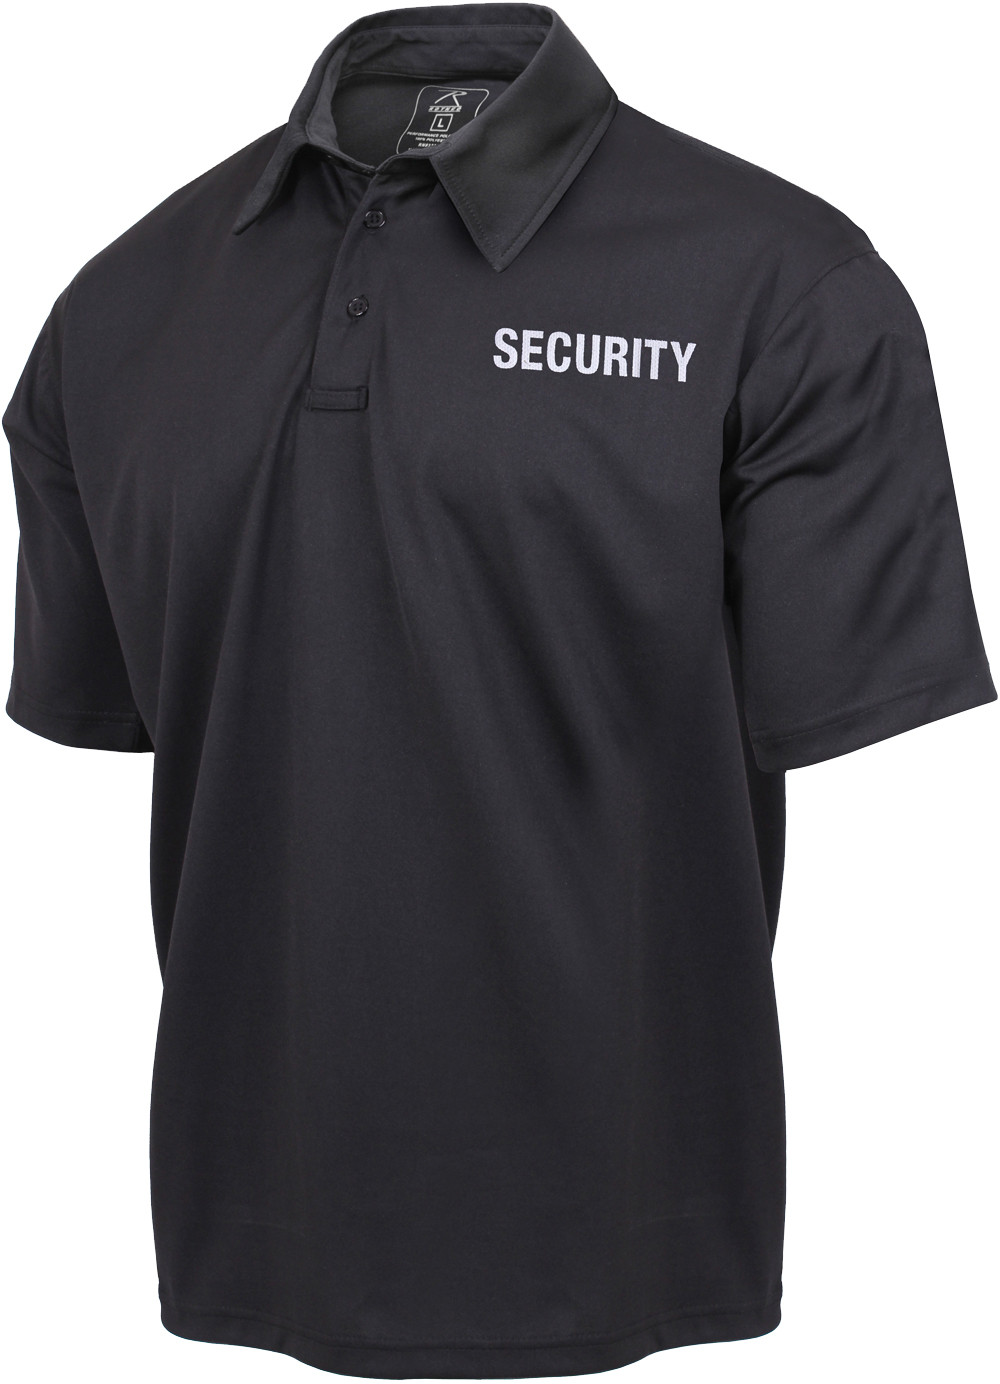 Black moisture wicking security double sided polo golf shirt for Moisture wicking golf shirts